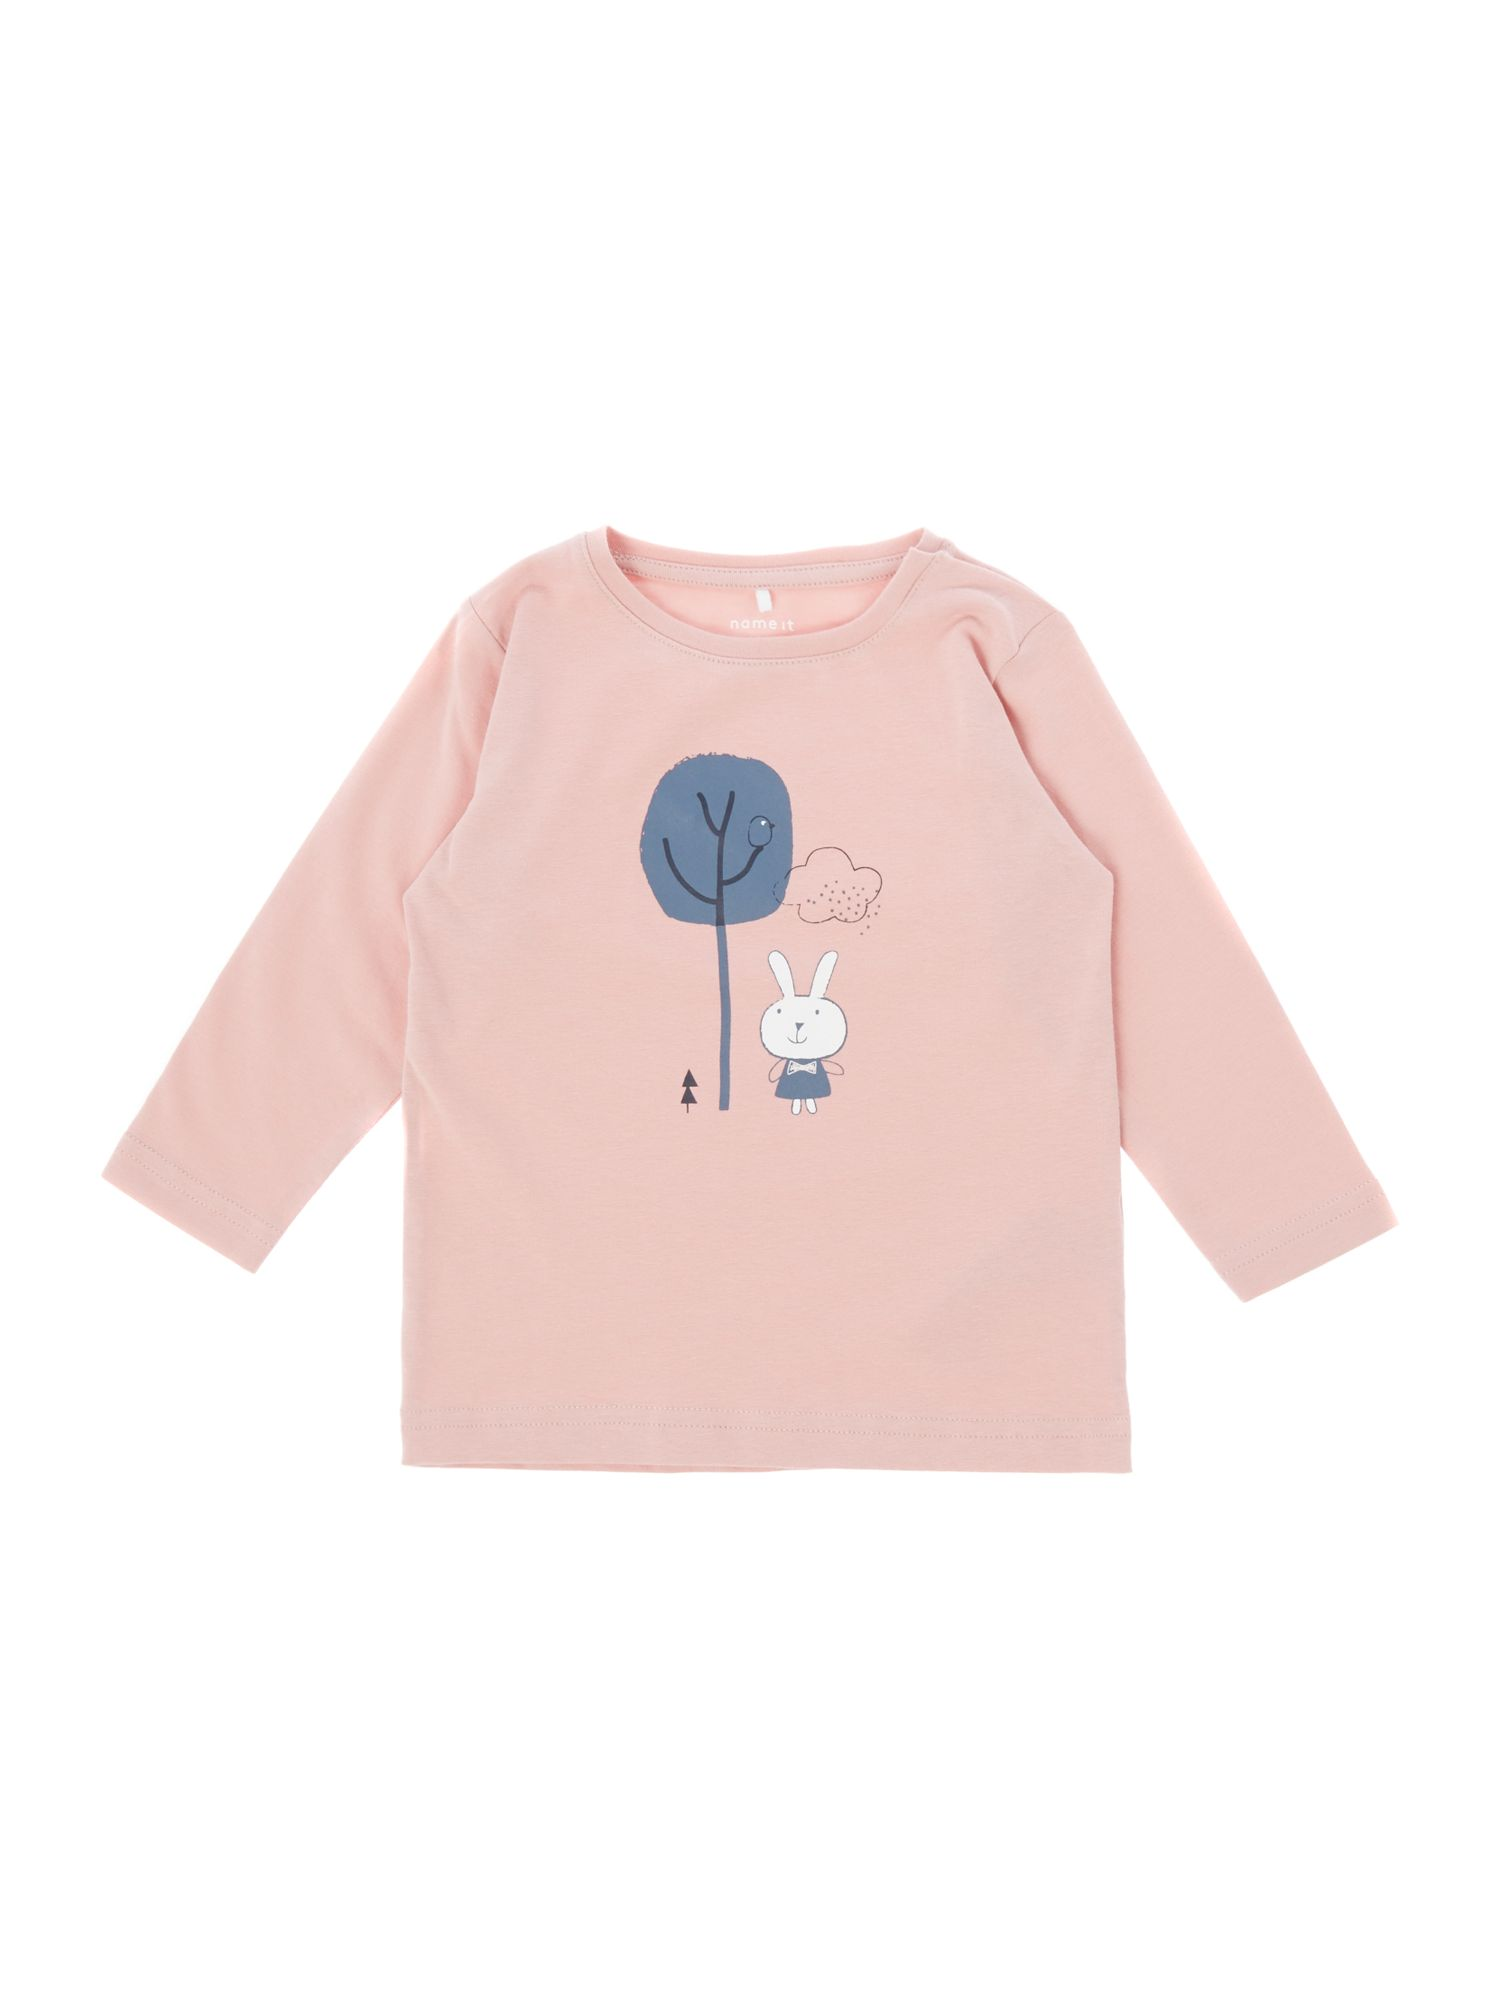 Name it name it Girls Graphic Bunny Long Sleeve T-Shirt, Light Pink